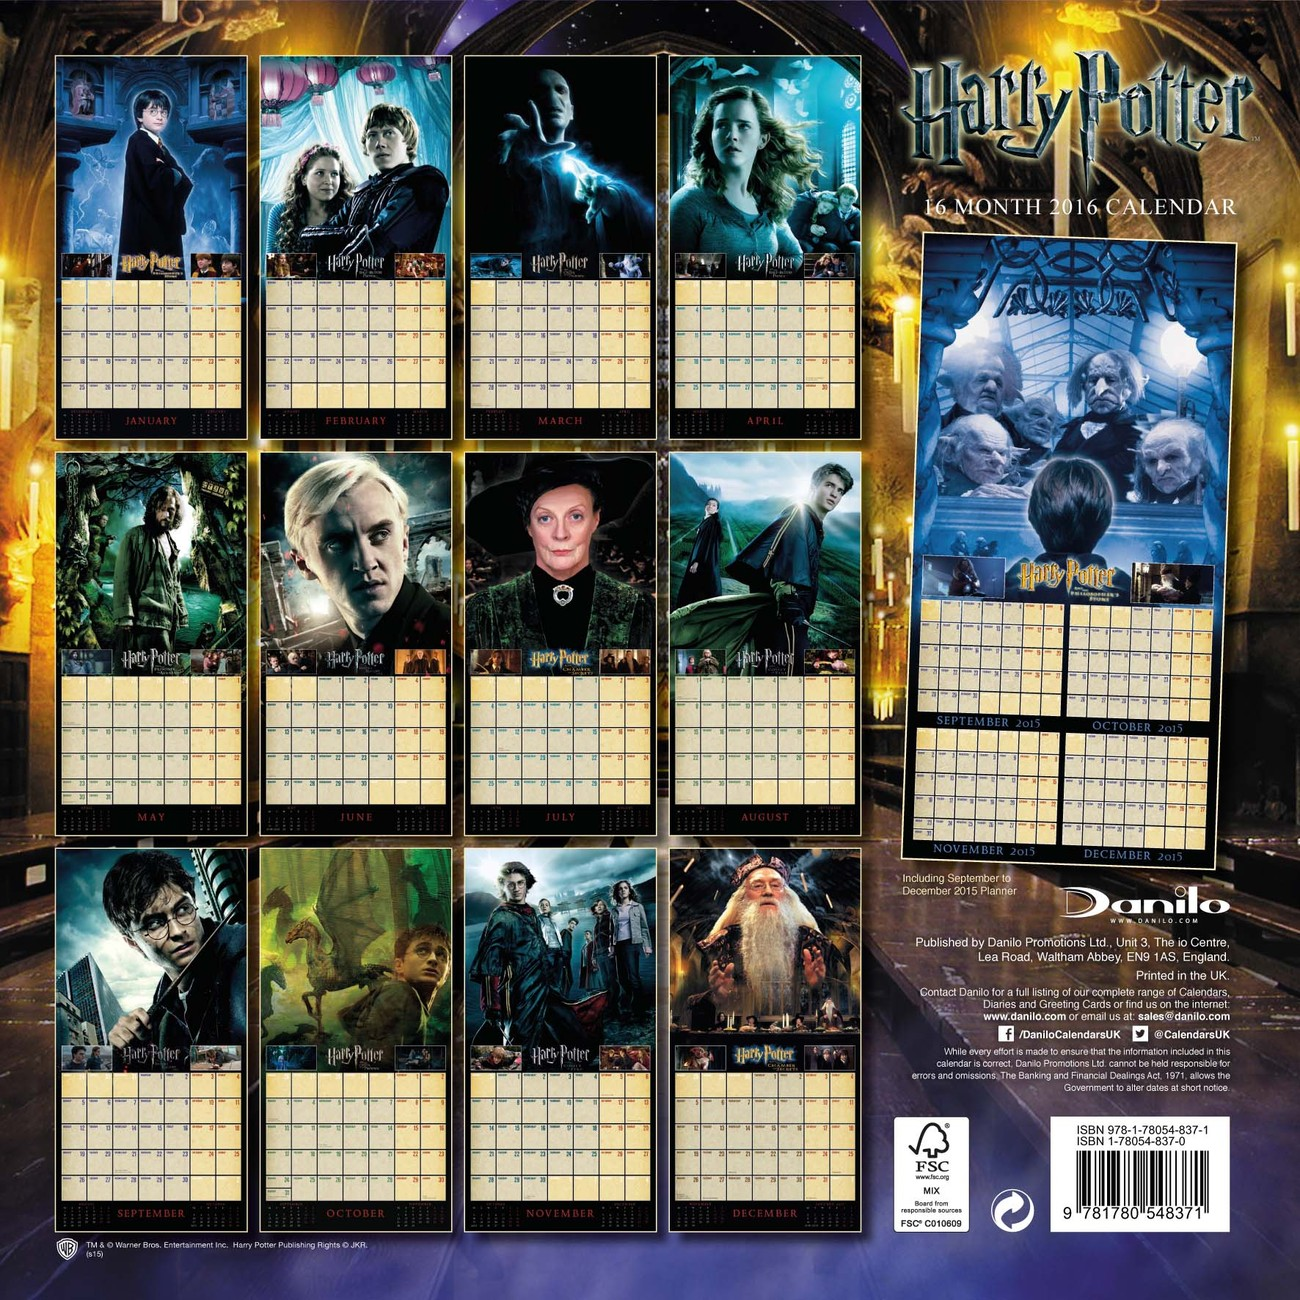 Harry Potter - Calendars 2020 on UKposters/EuroPosters